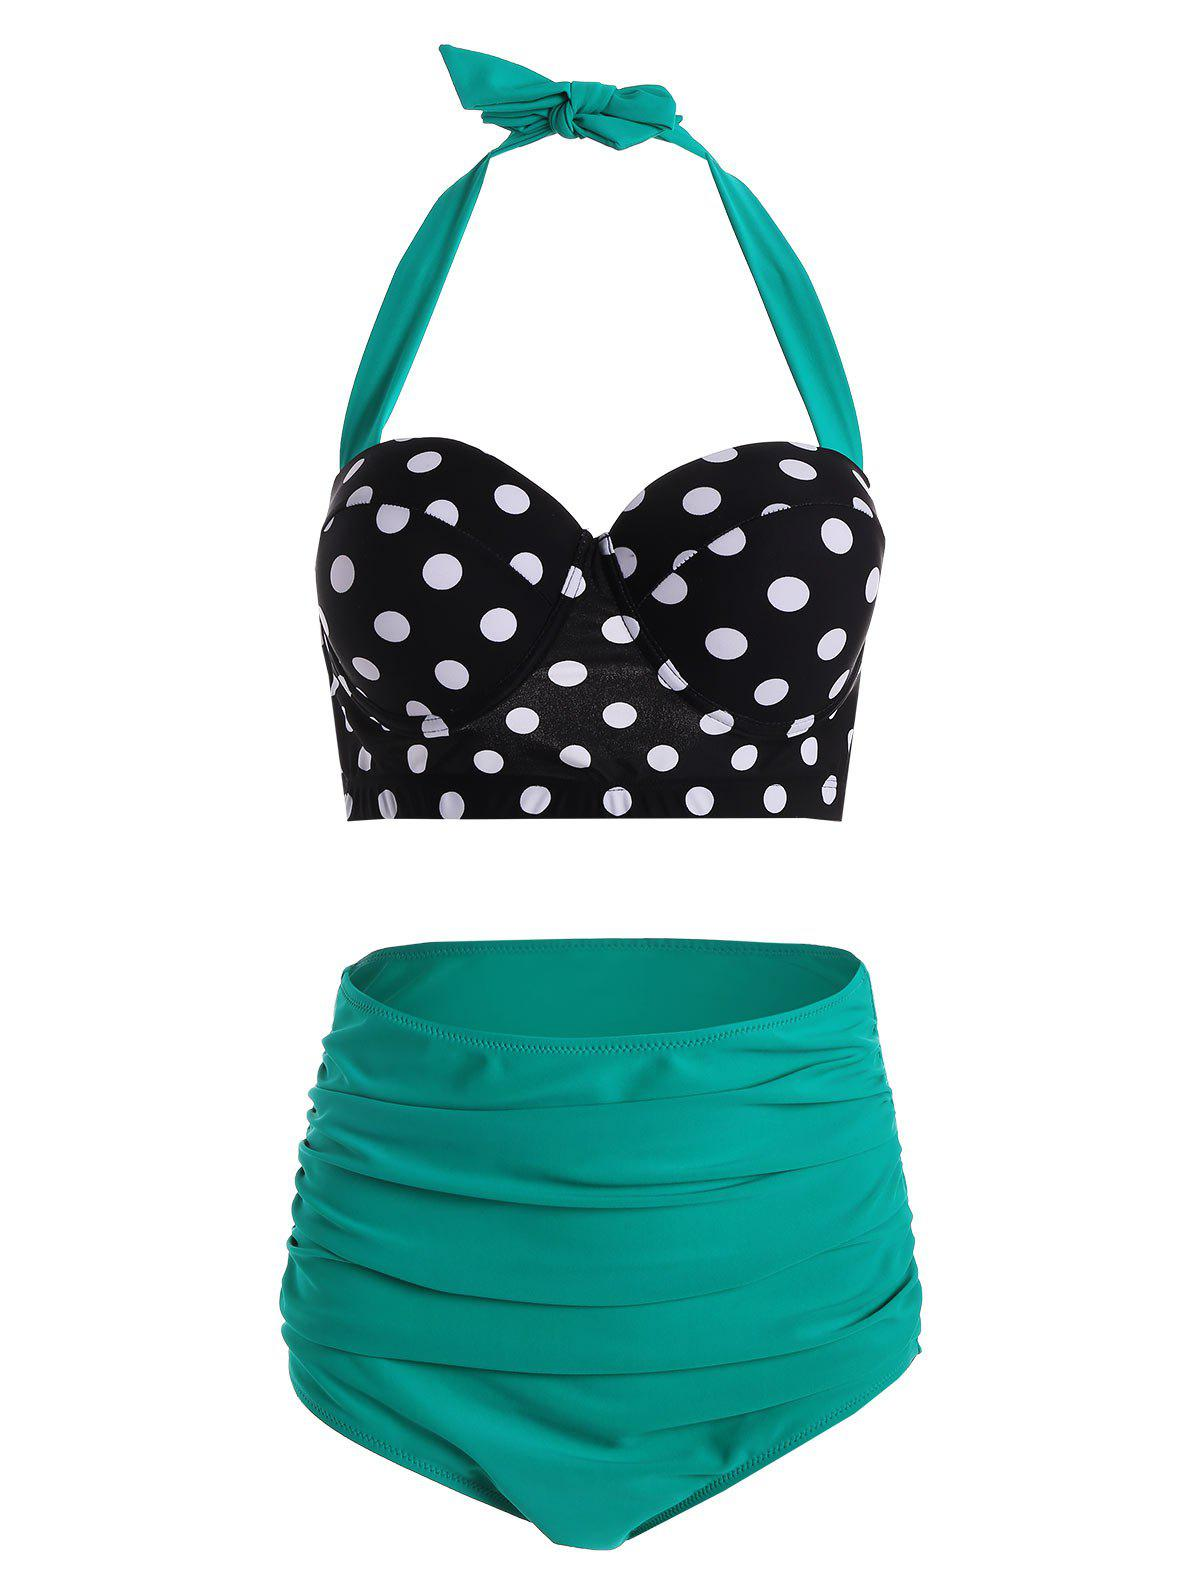 Polka Dot High Waist Plus Size Push Up Bikini лампочка филипс 007054 b1s 35w e1 04j dot 9285 141 294